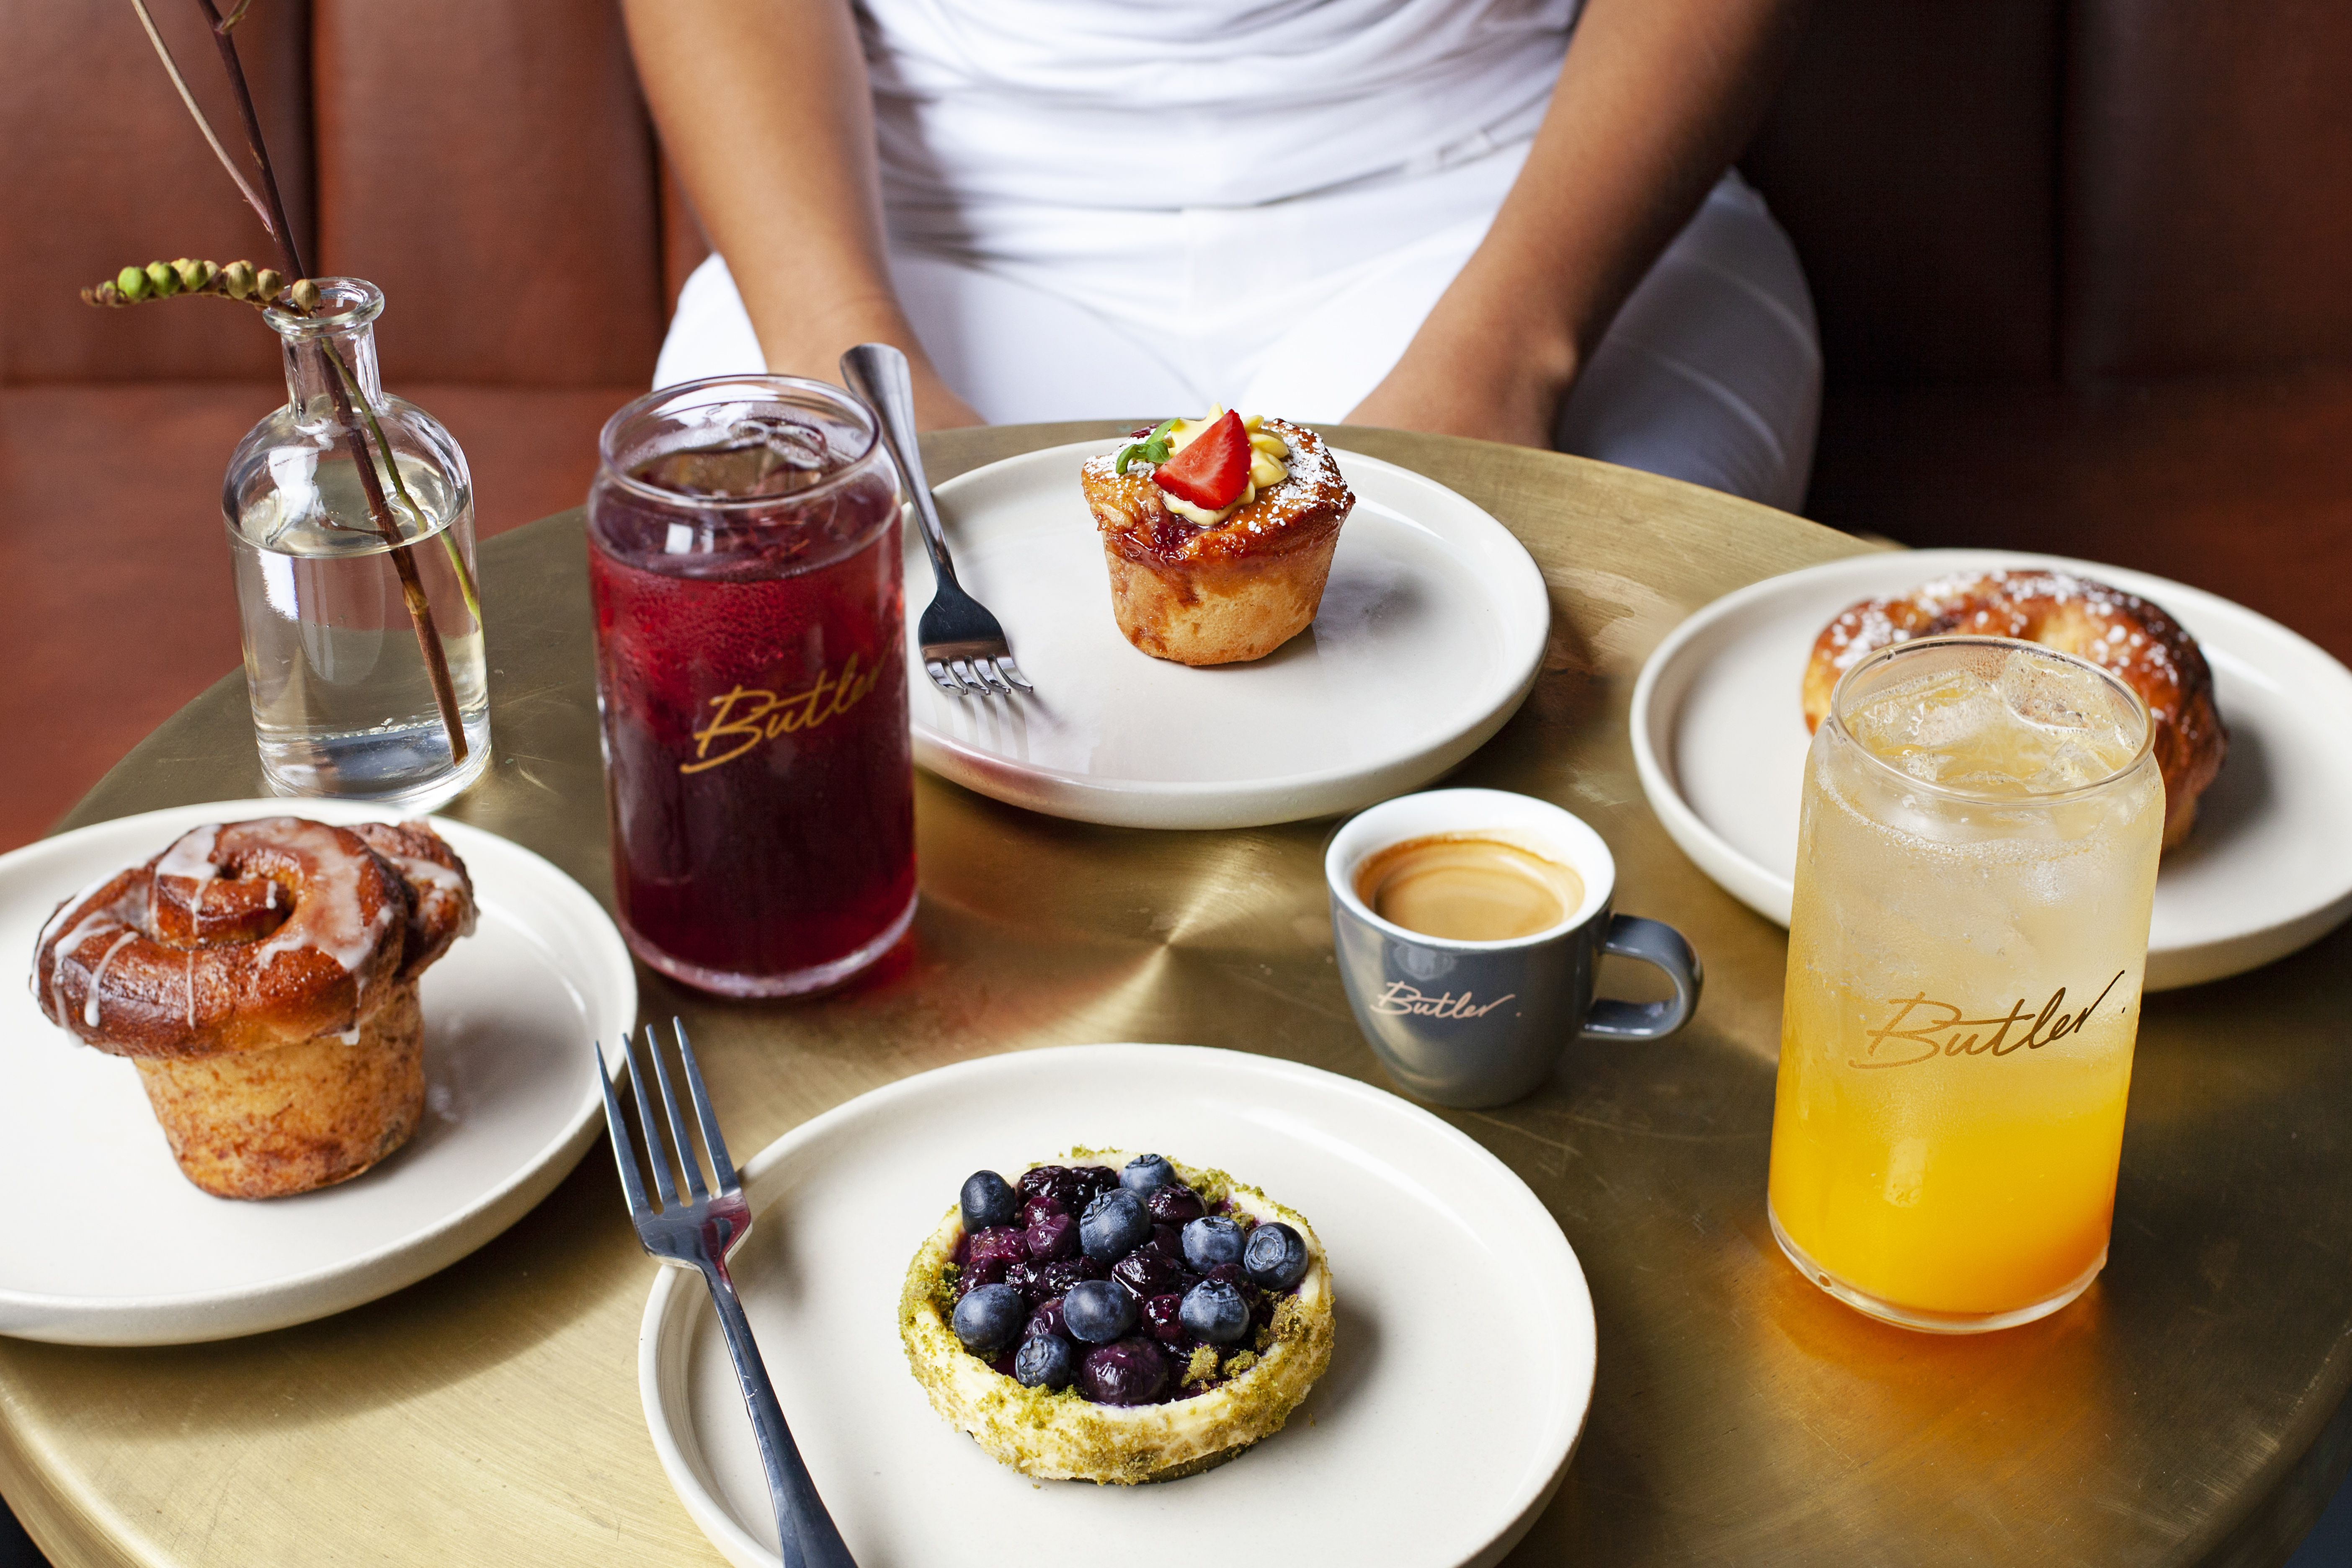 A table covered in delicious desserts and fruit drinks from Butler Bakery in New York City